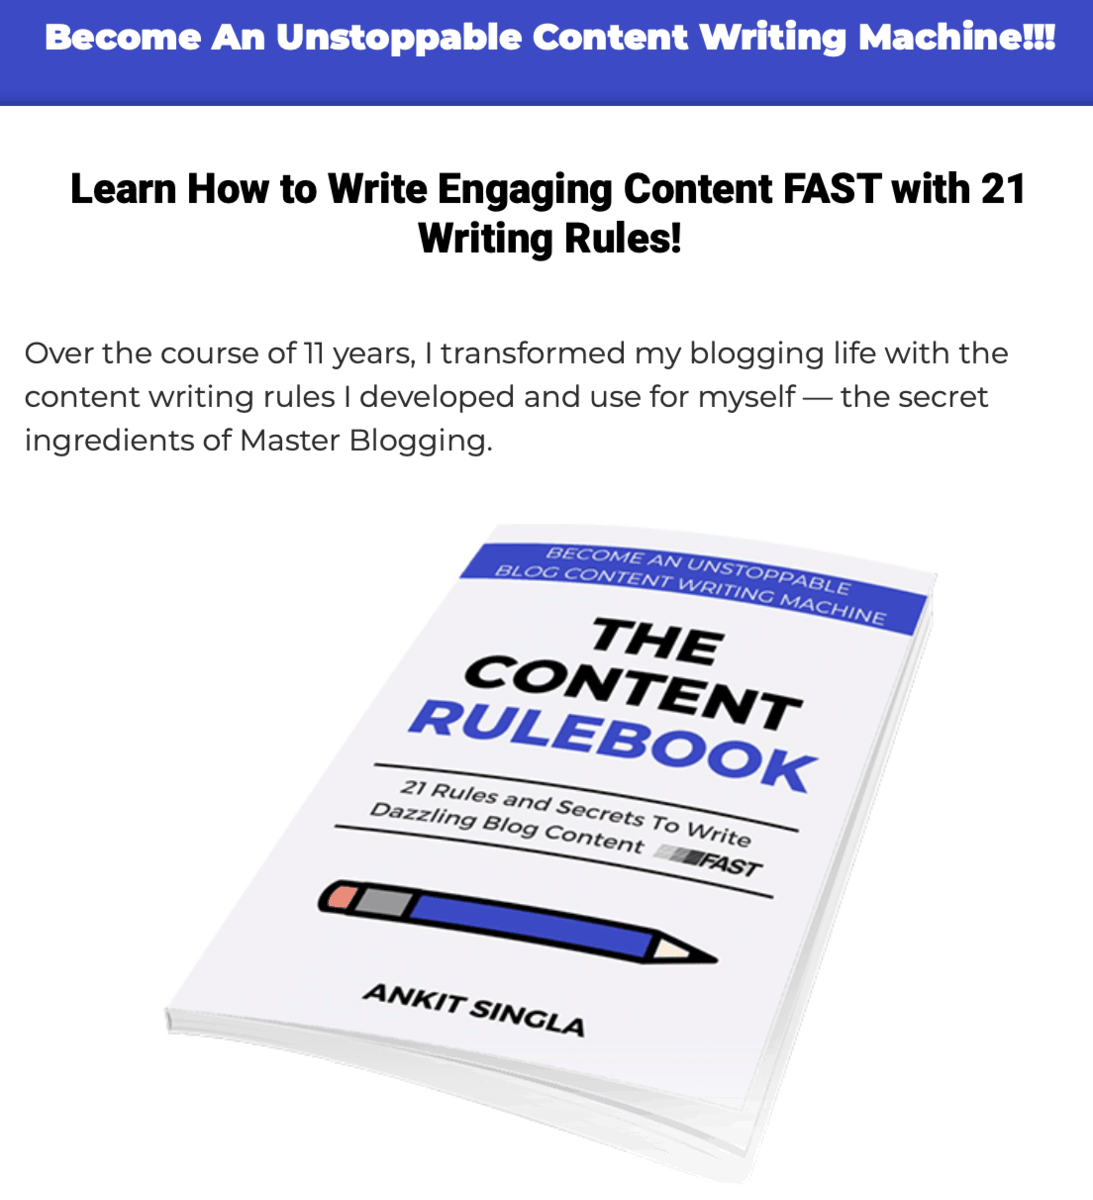 The Content Rulebook